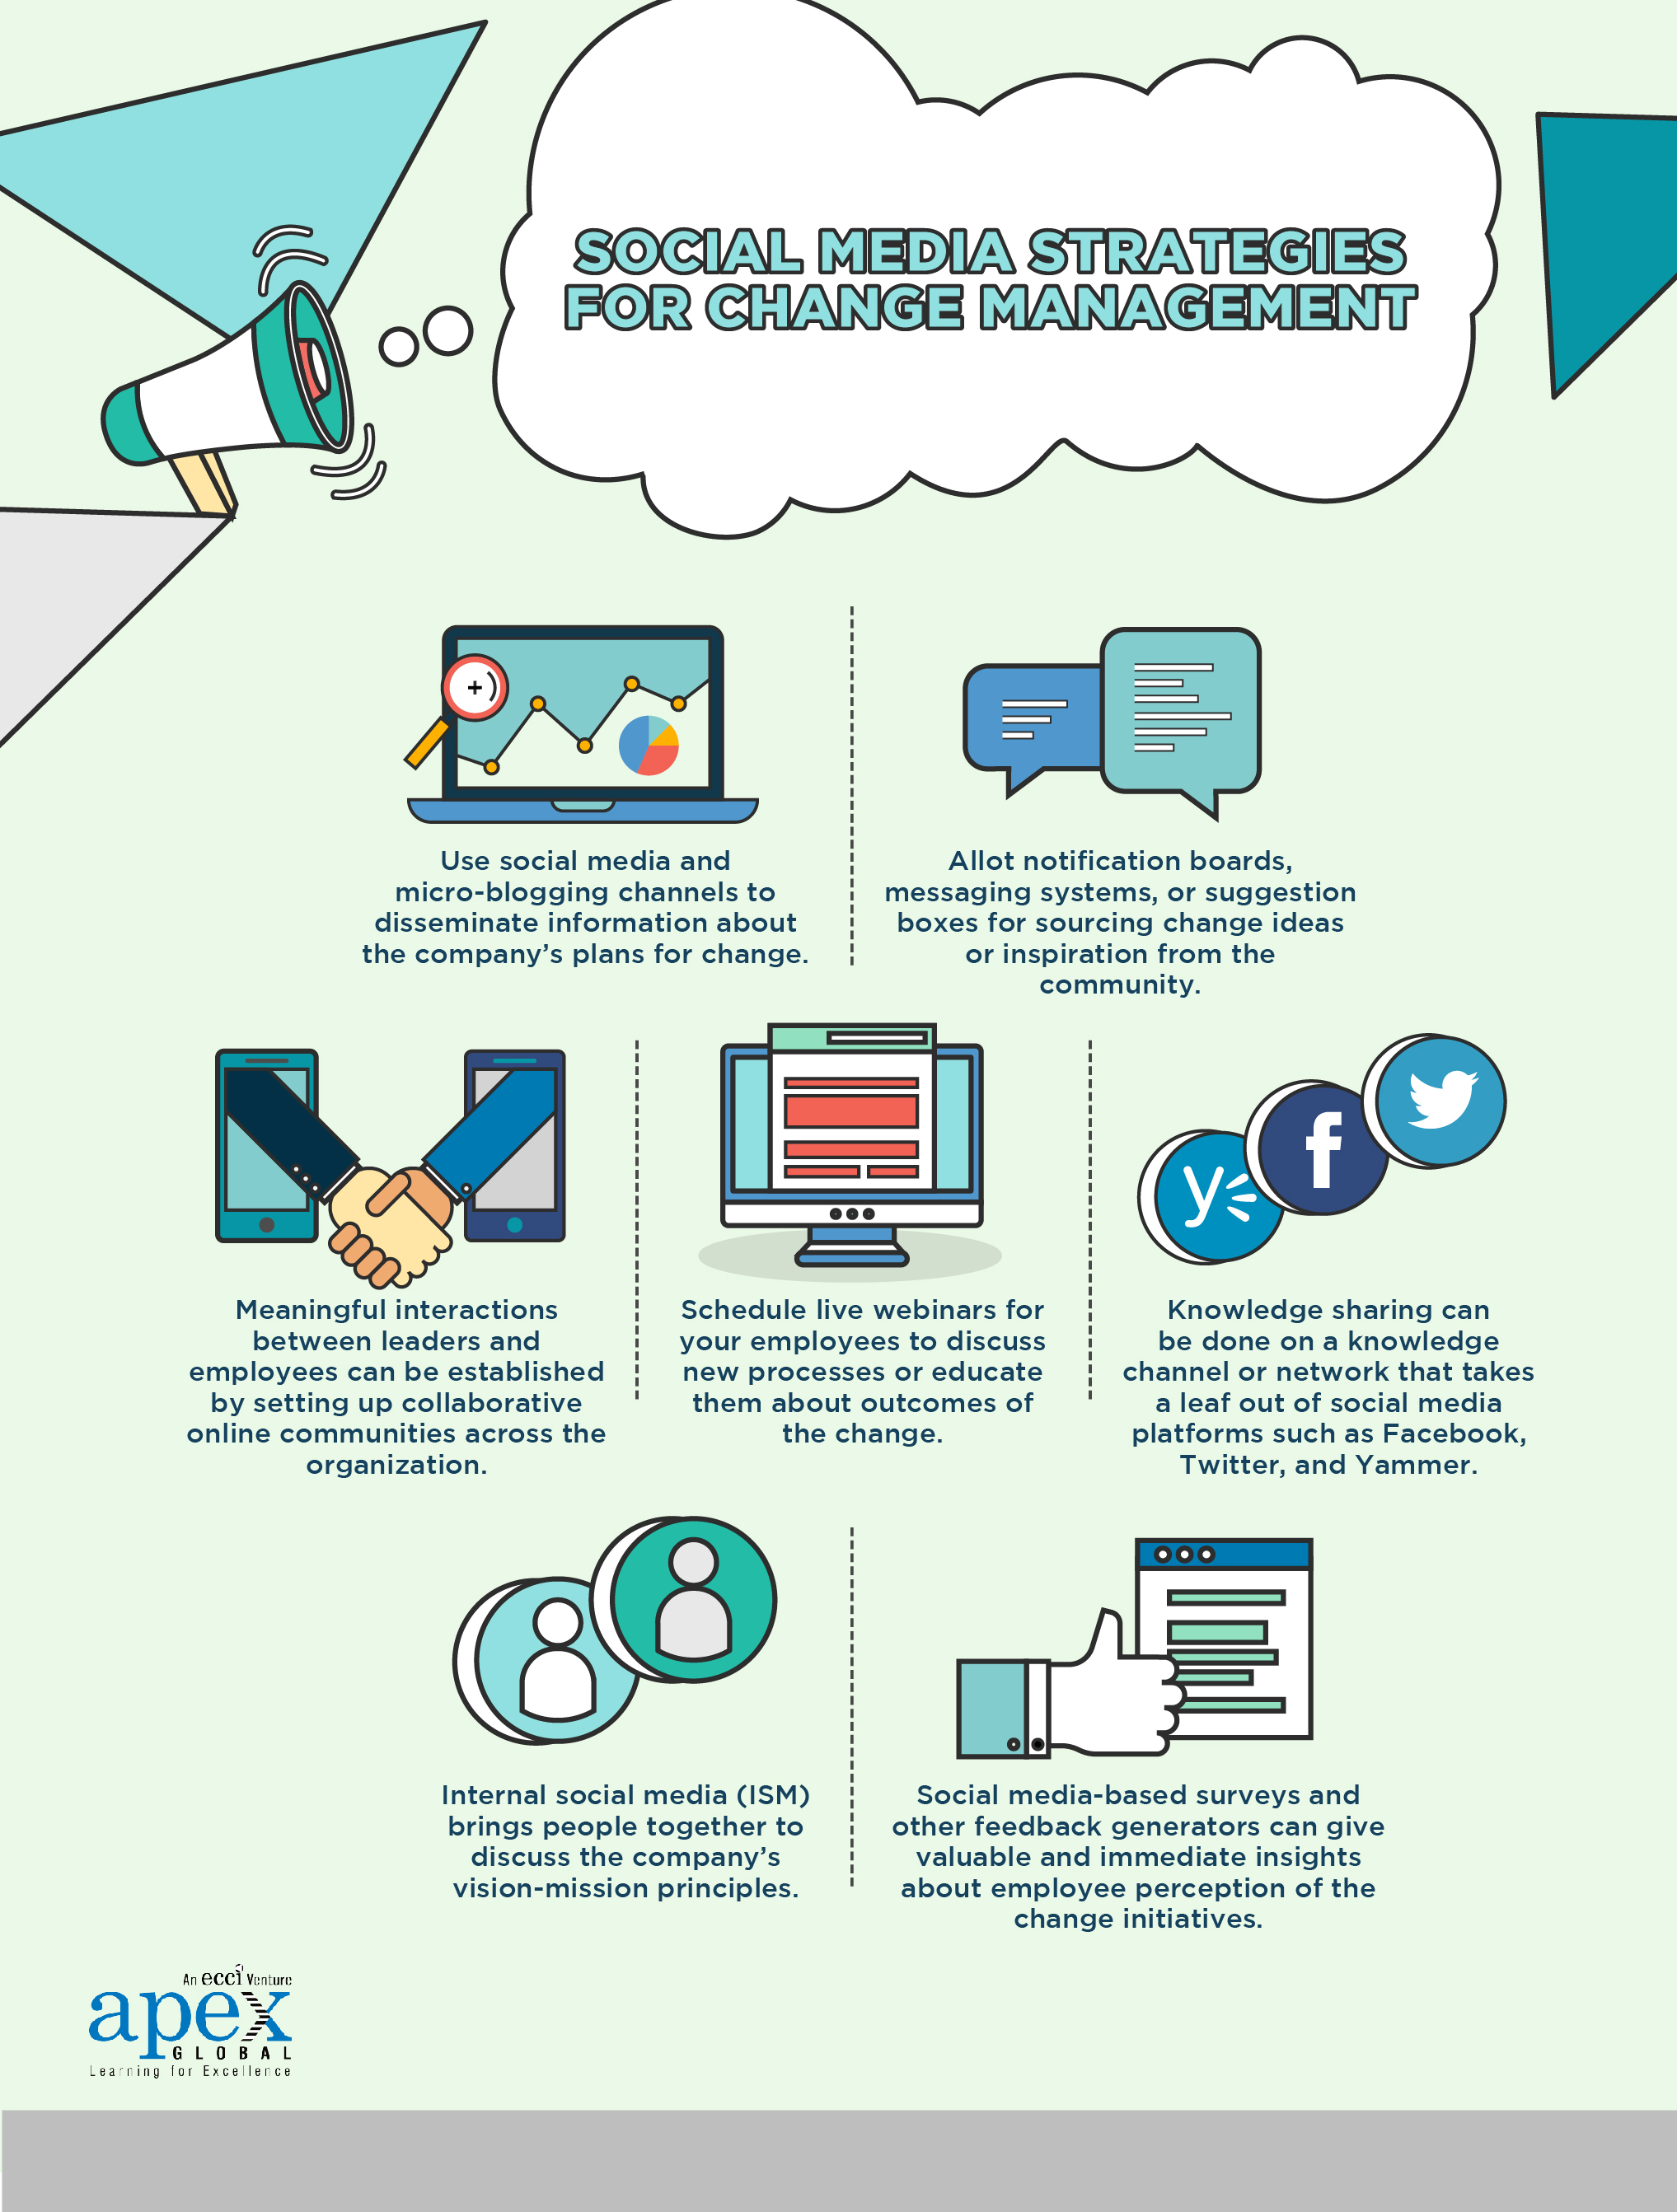 change-management-through-social-media-what-you-need-to-know-infographic